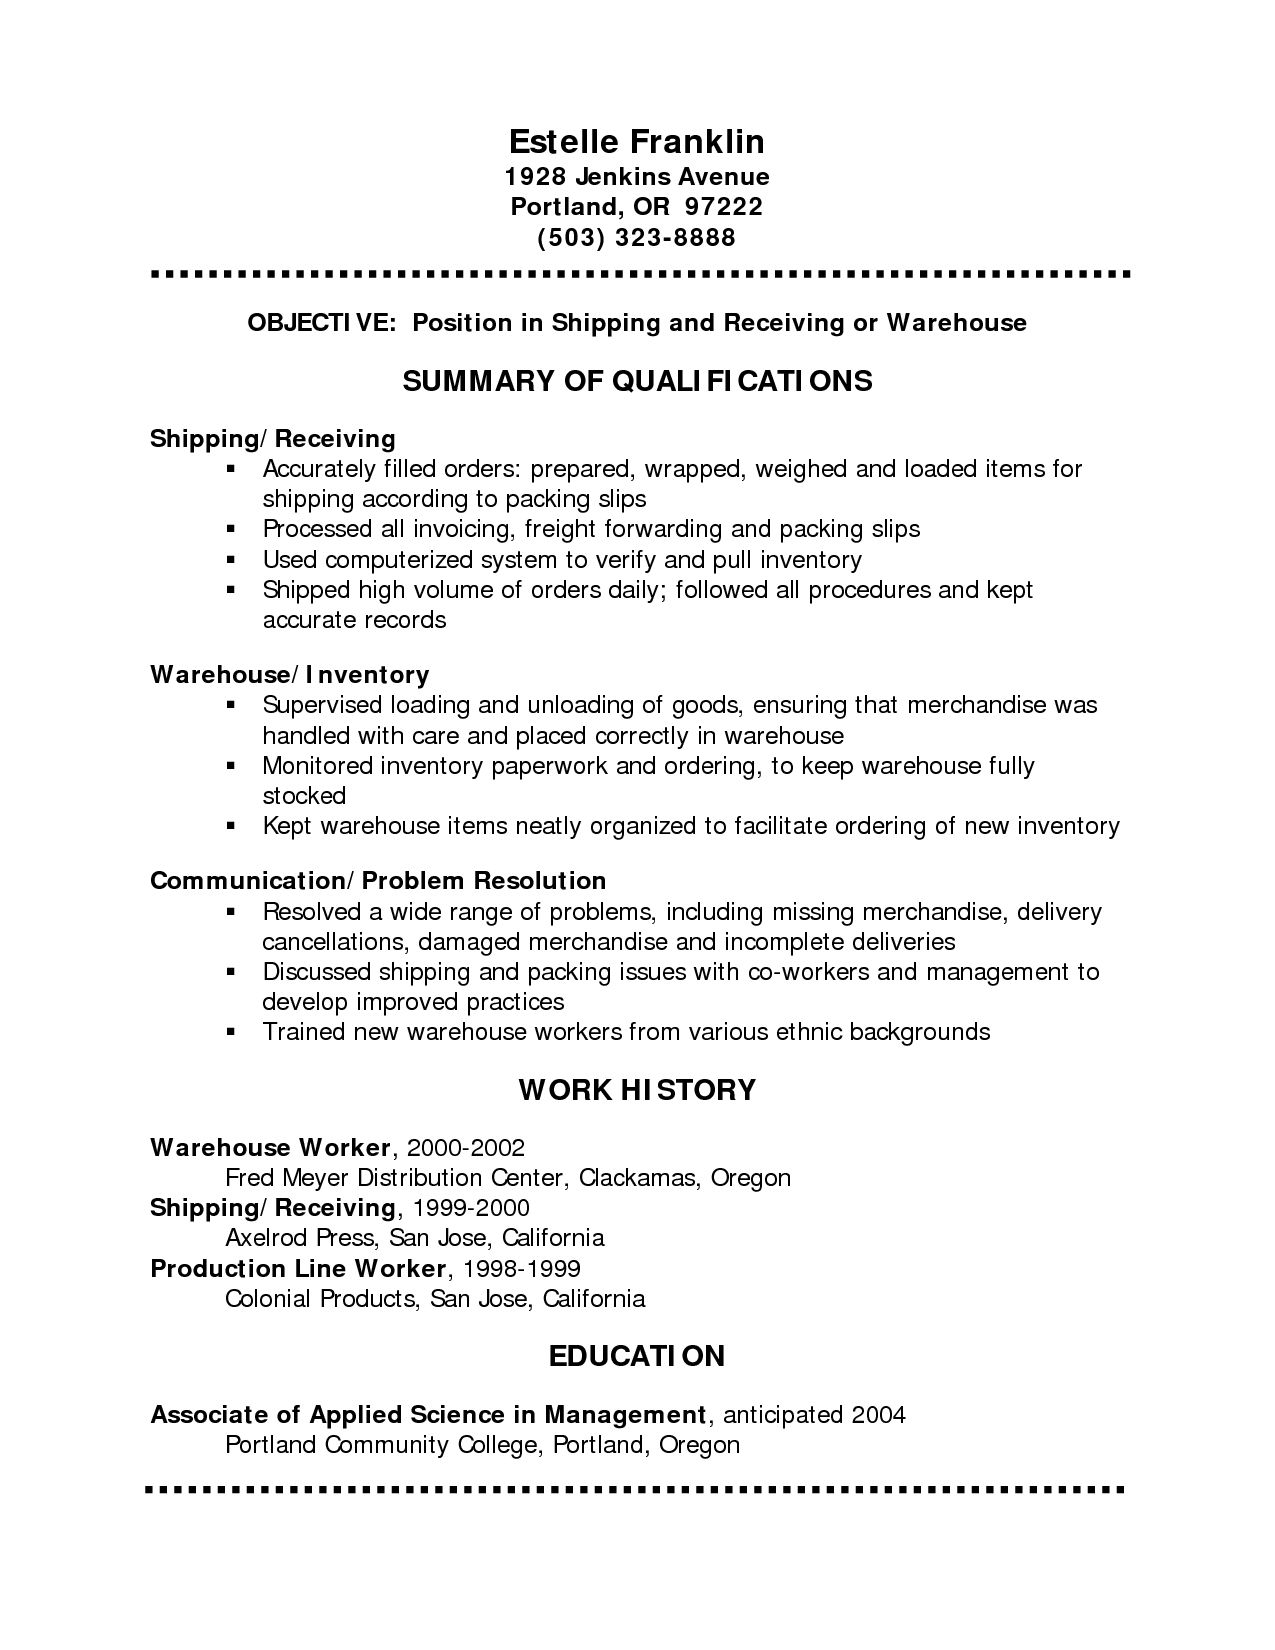 Apa Resume Sample Computer Engineer Cover Letter Costume References  Reference Page  Cover Page For Resume Examples